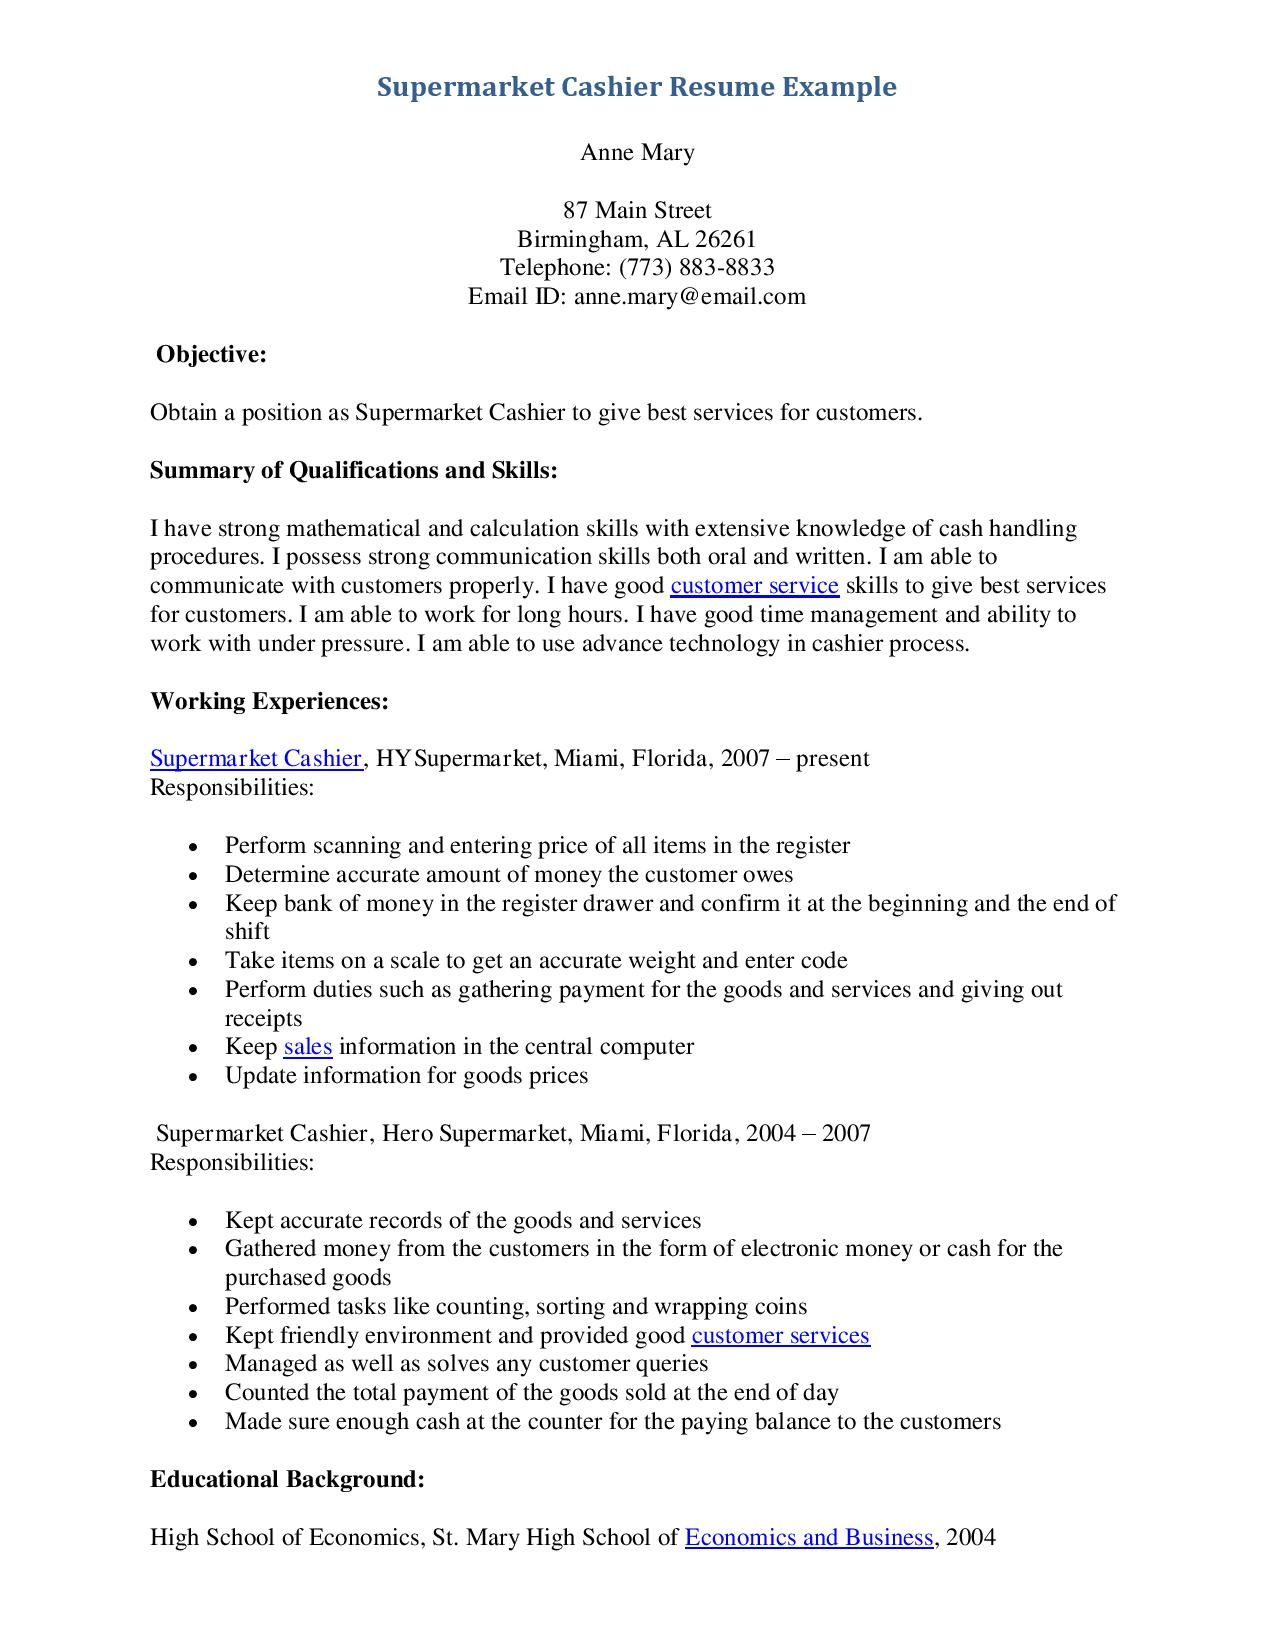 Supermarket Resume Examples Examples Of Resumes